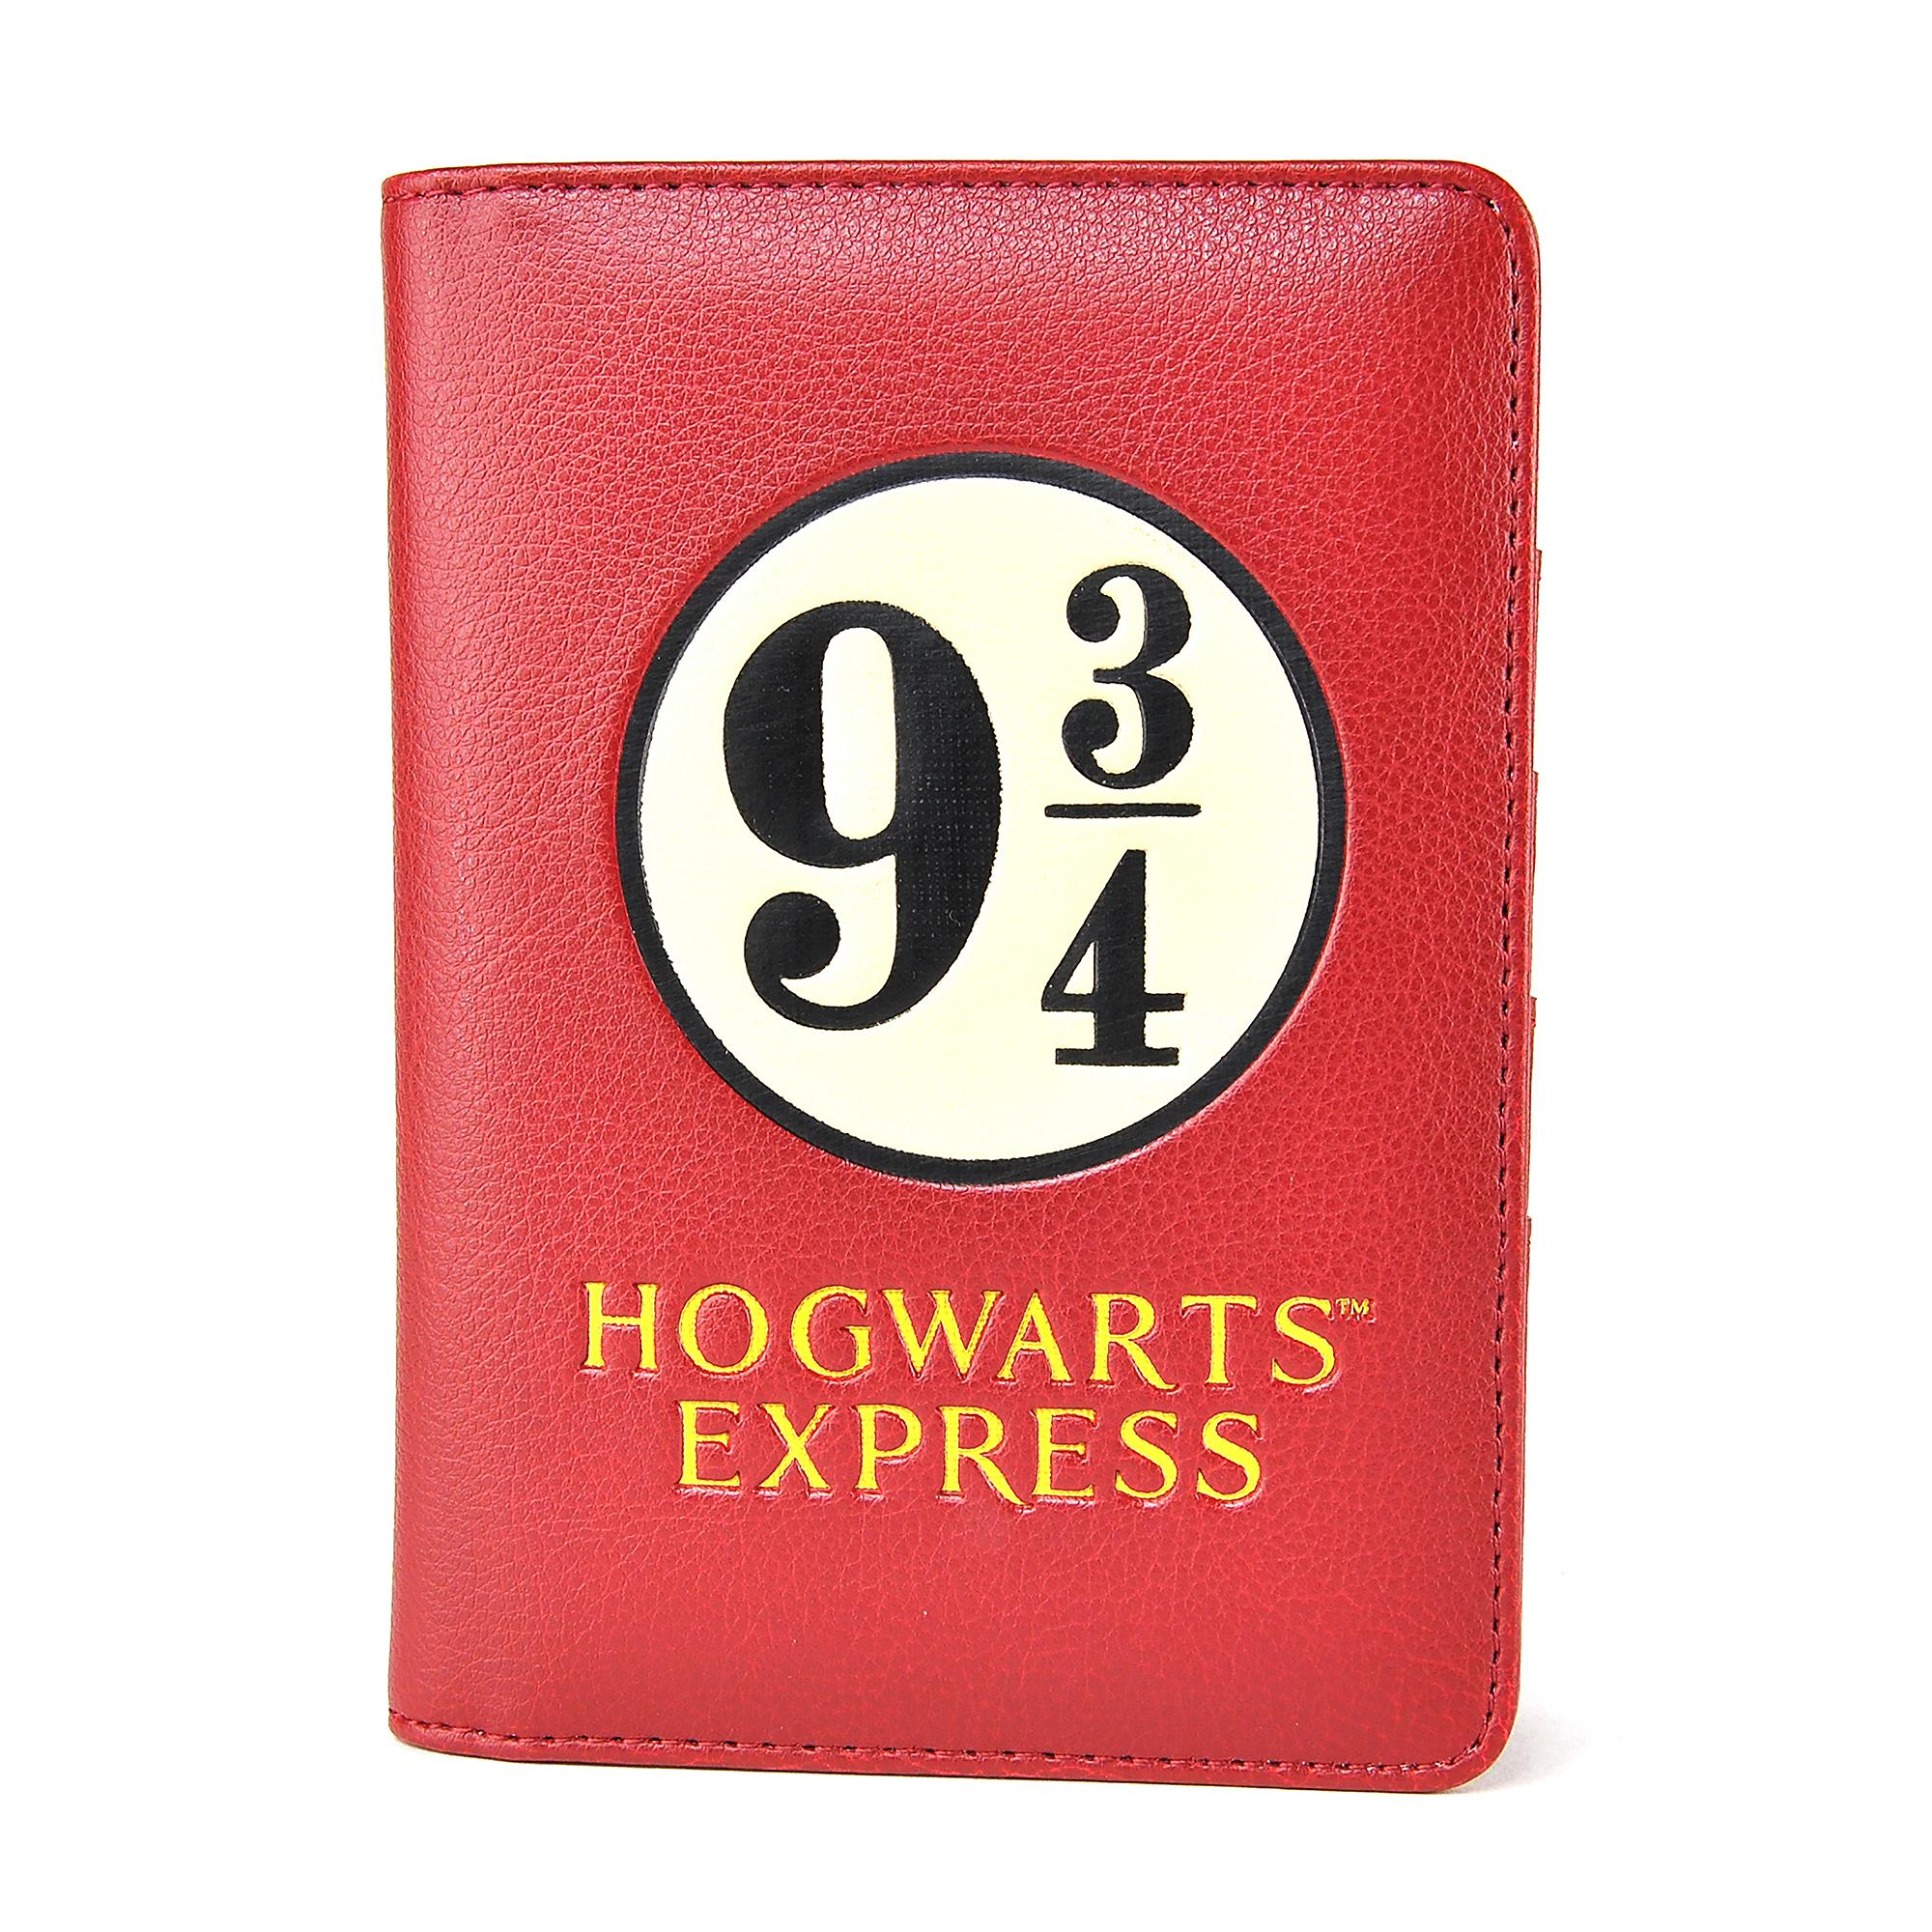 1b8eabbabb5 OFFICIAL HARRY POTTER HOGWARTS EXPRESS 9 3 4 PASSPORT HOLDER NEW ...